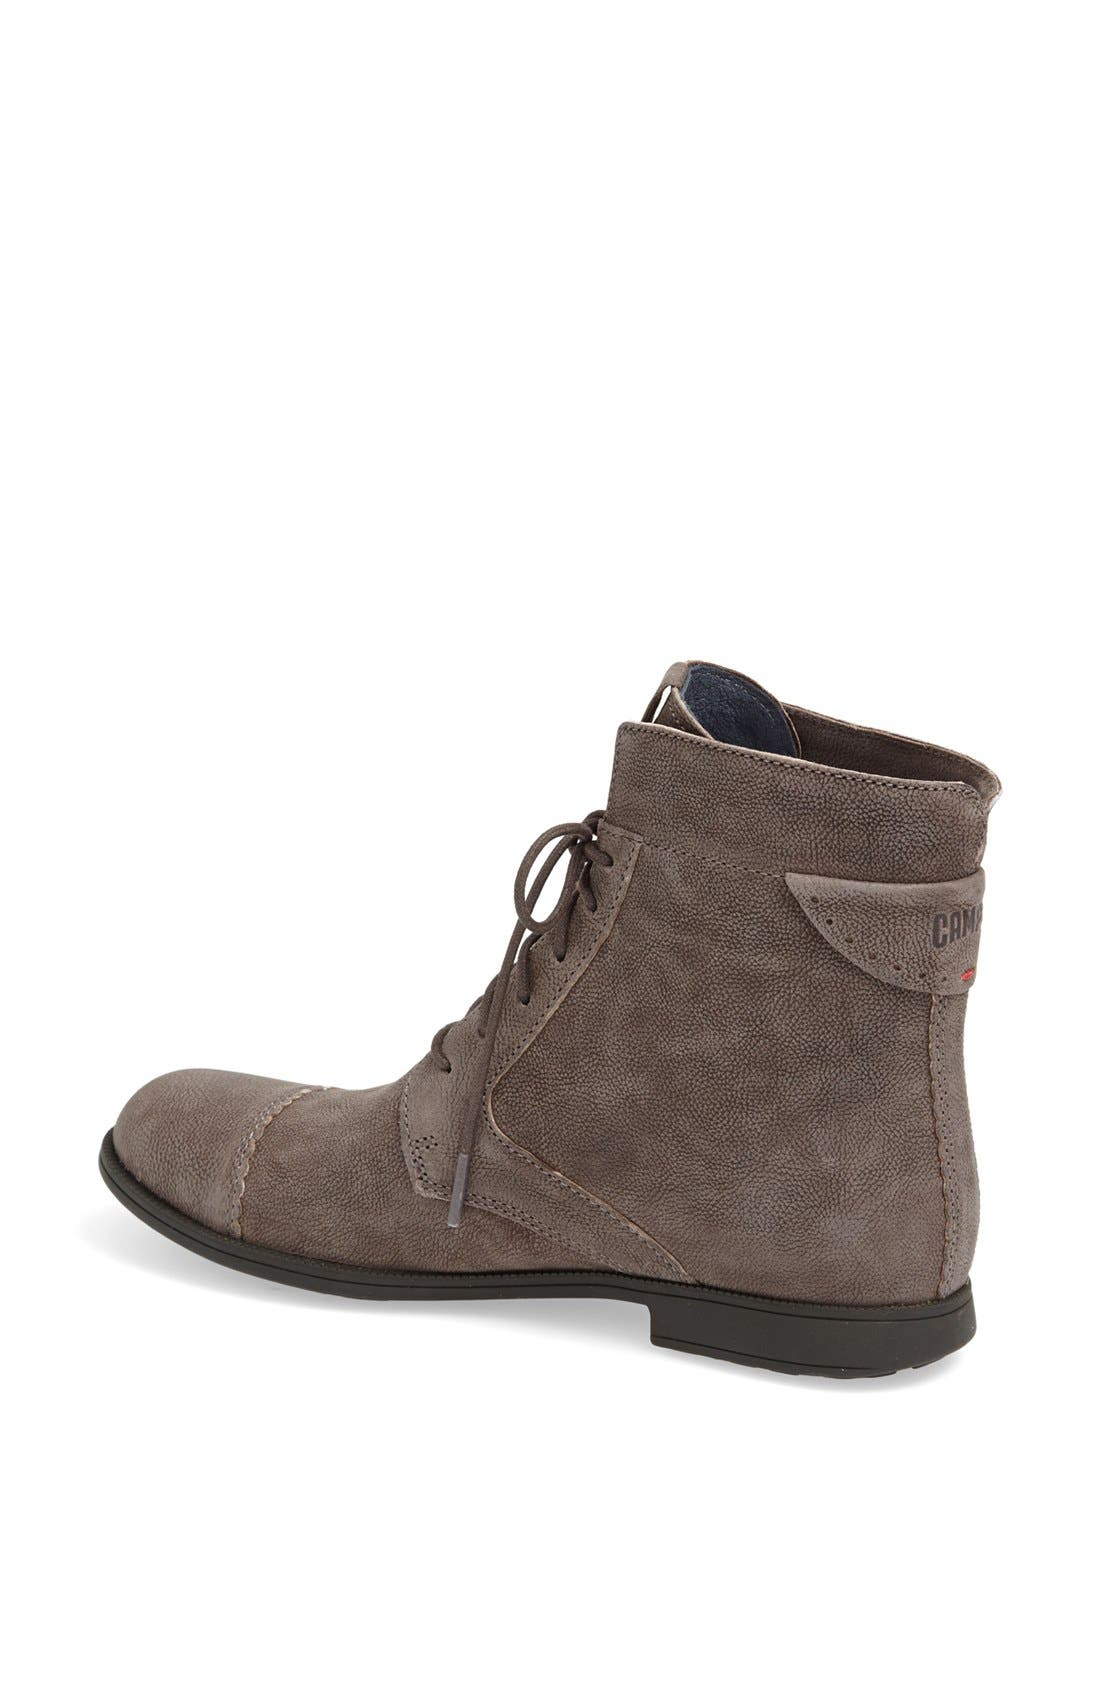 Alternate Image 2  - Camper '1913' Leather Ankle Bootie